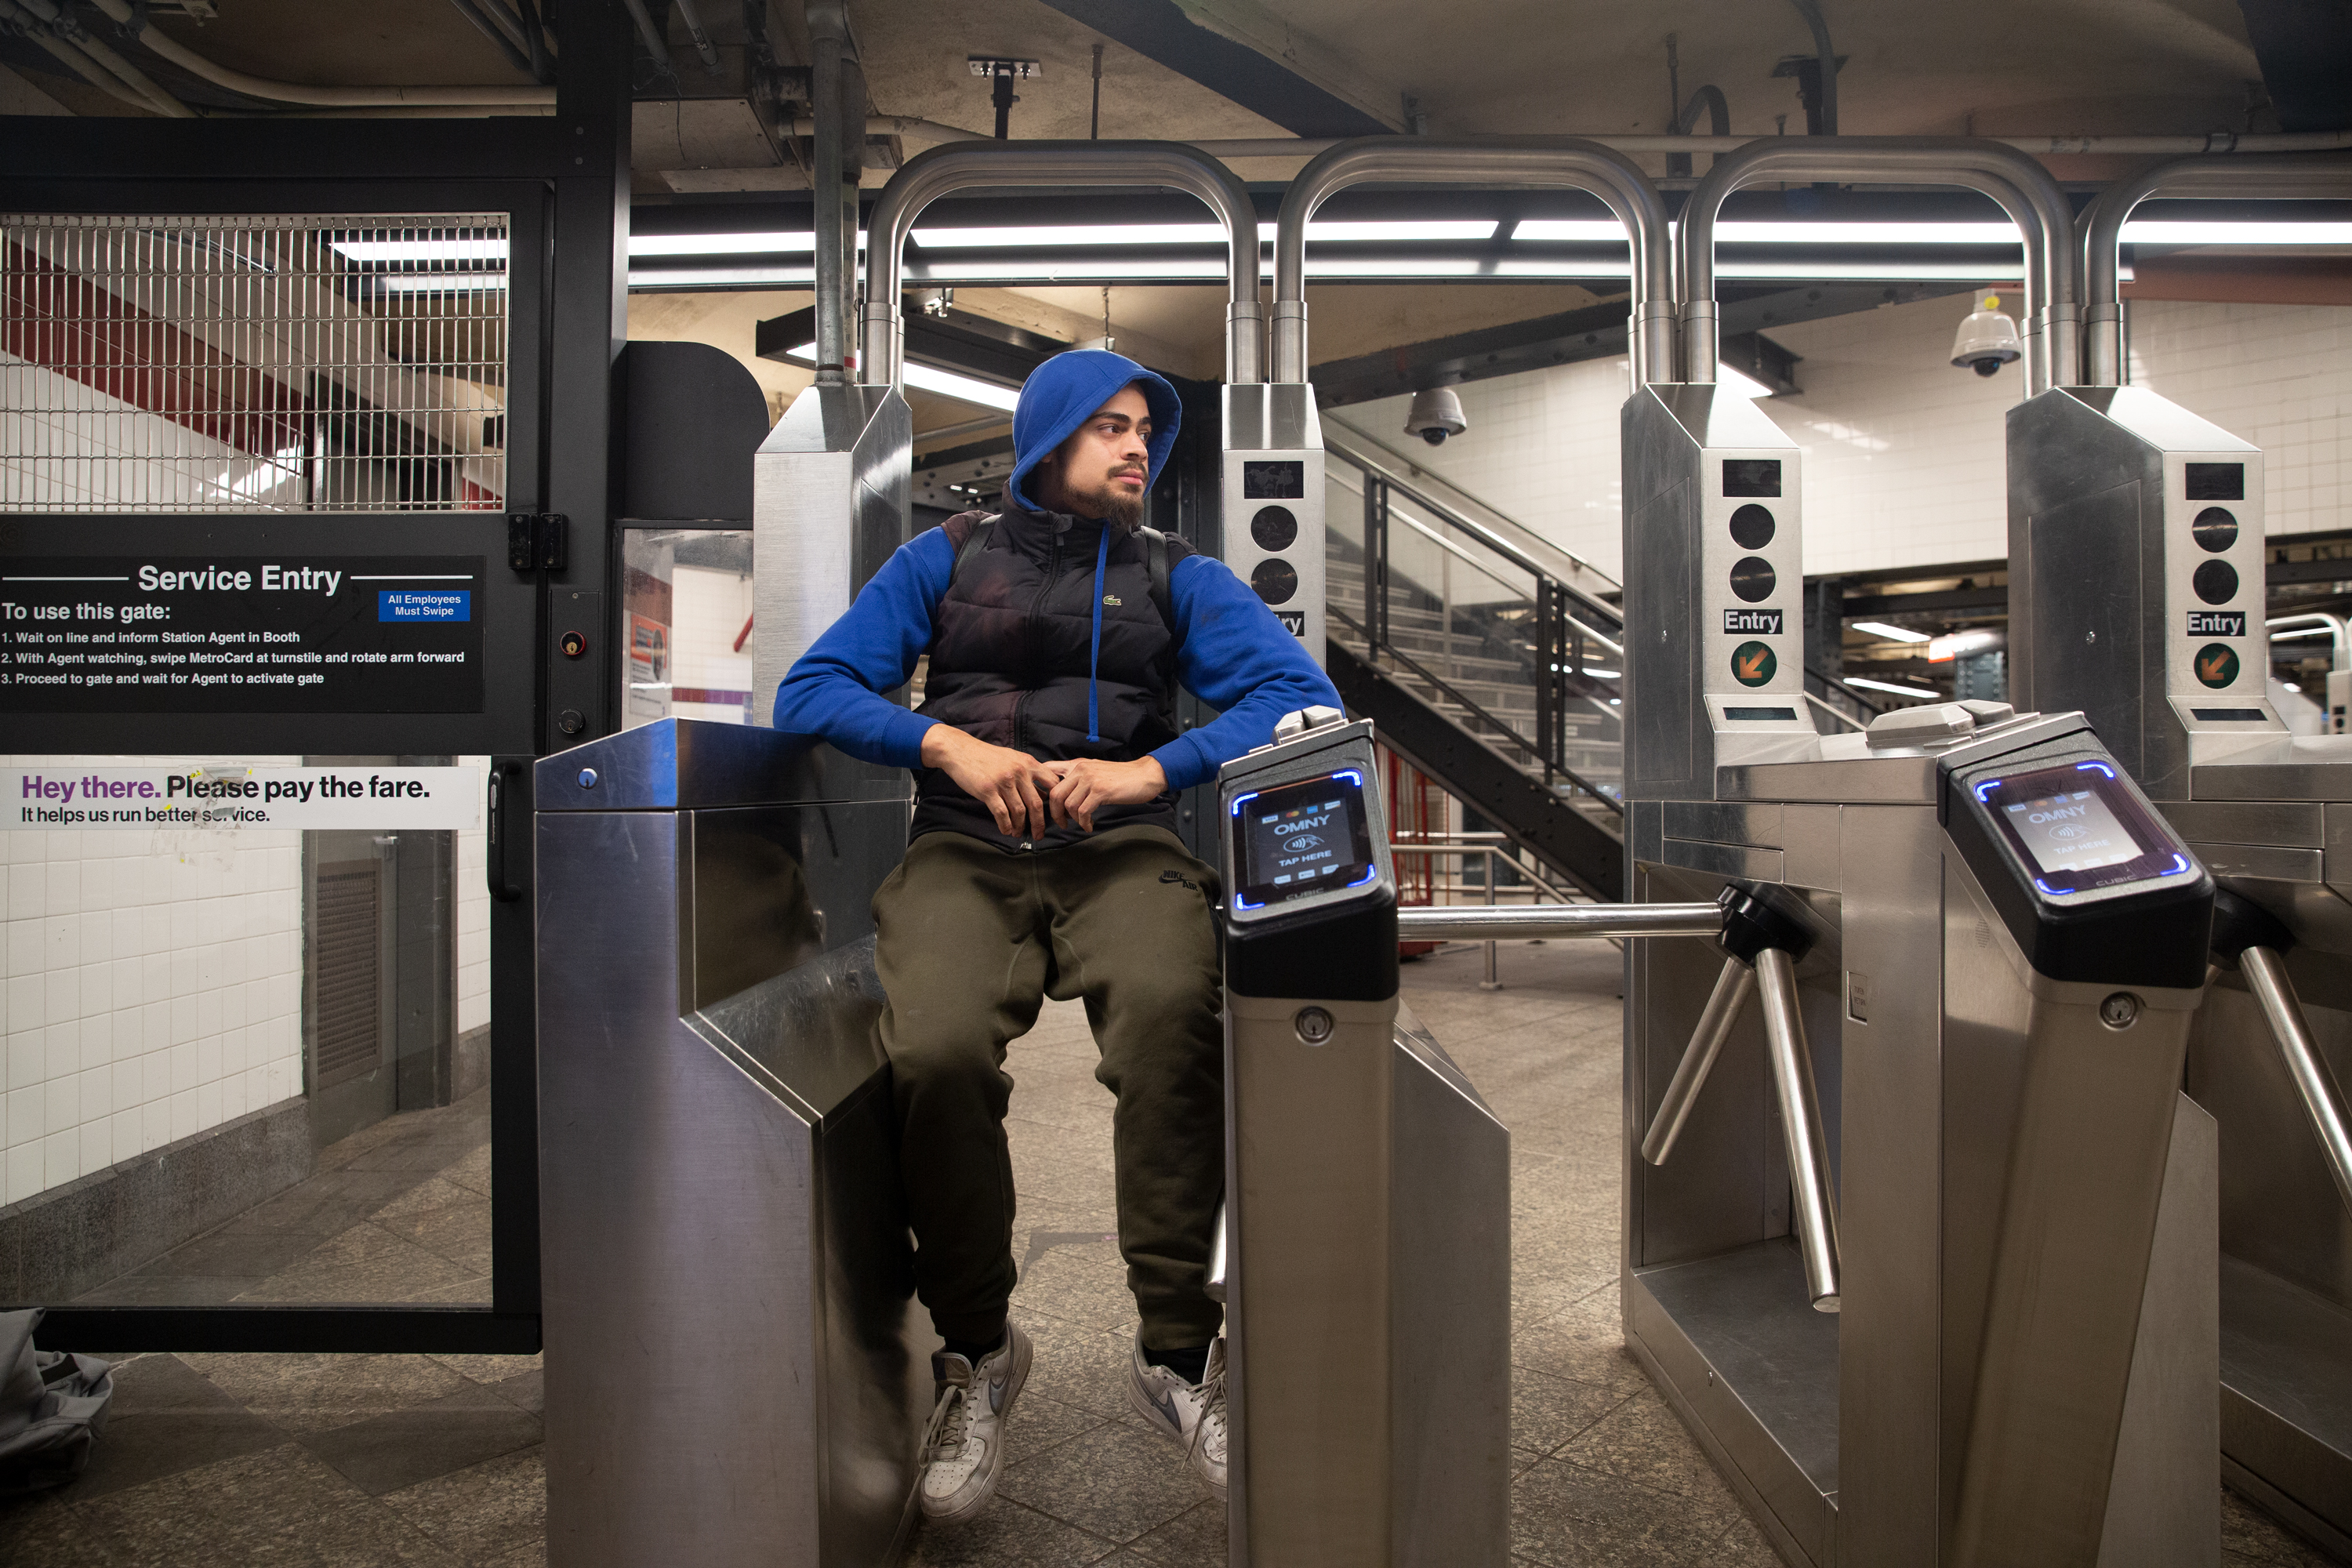 Jesus Soto said he doesn't feel welcome in the new Moynihan Hall. In Penn Station, Jan. 5, 2020.